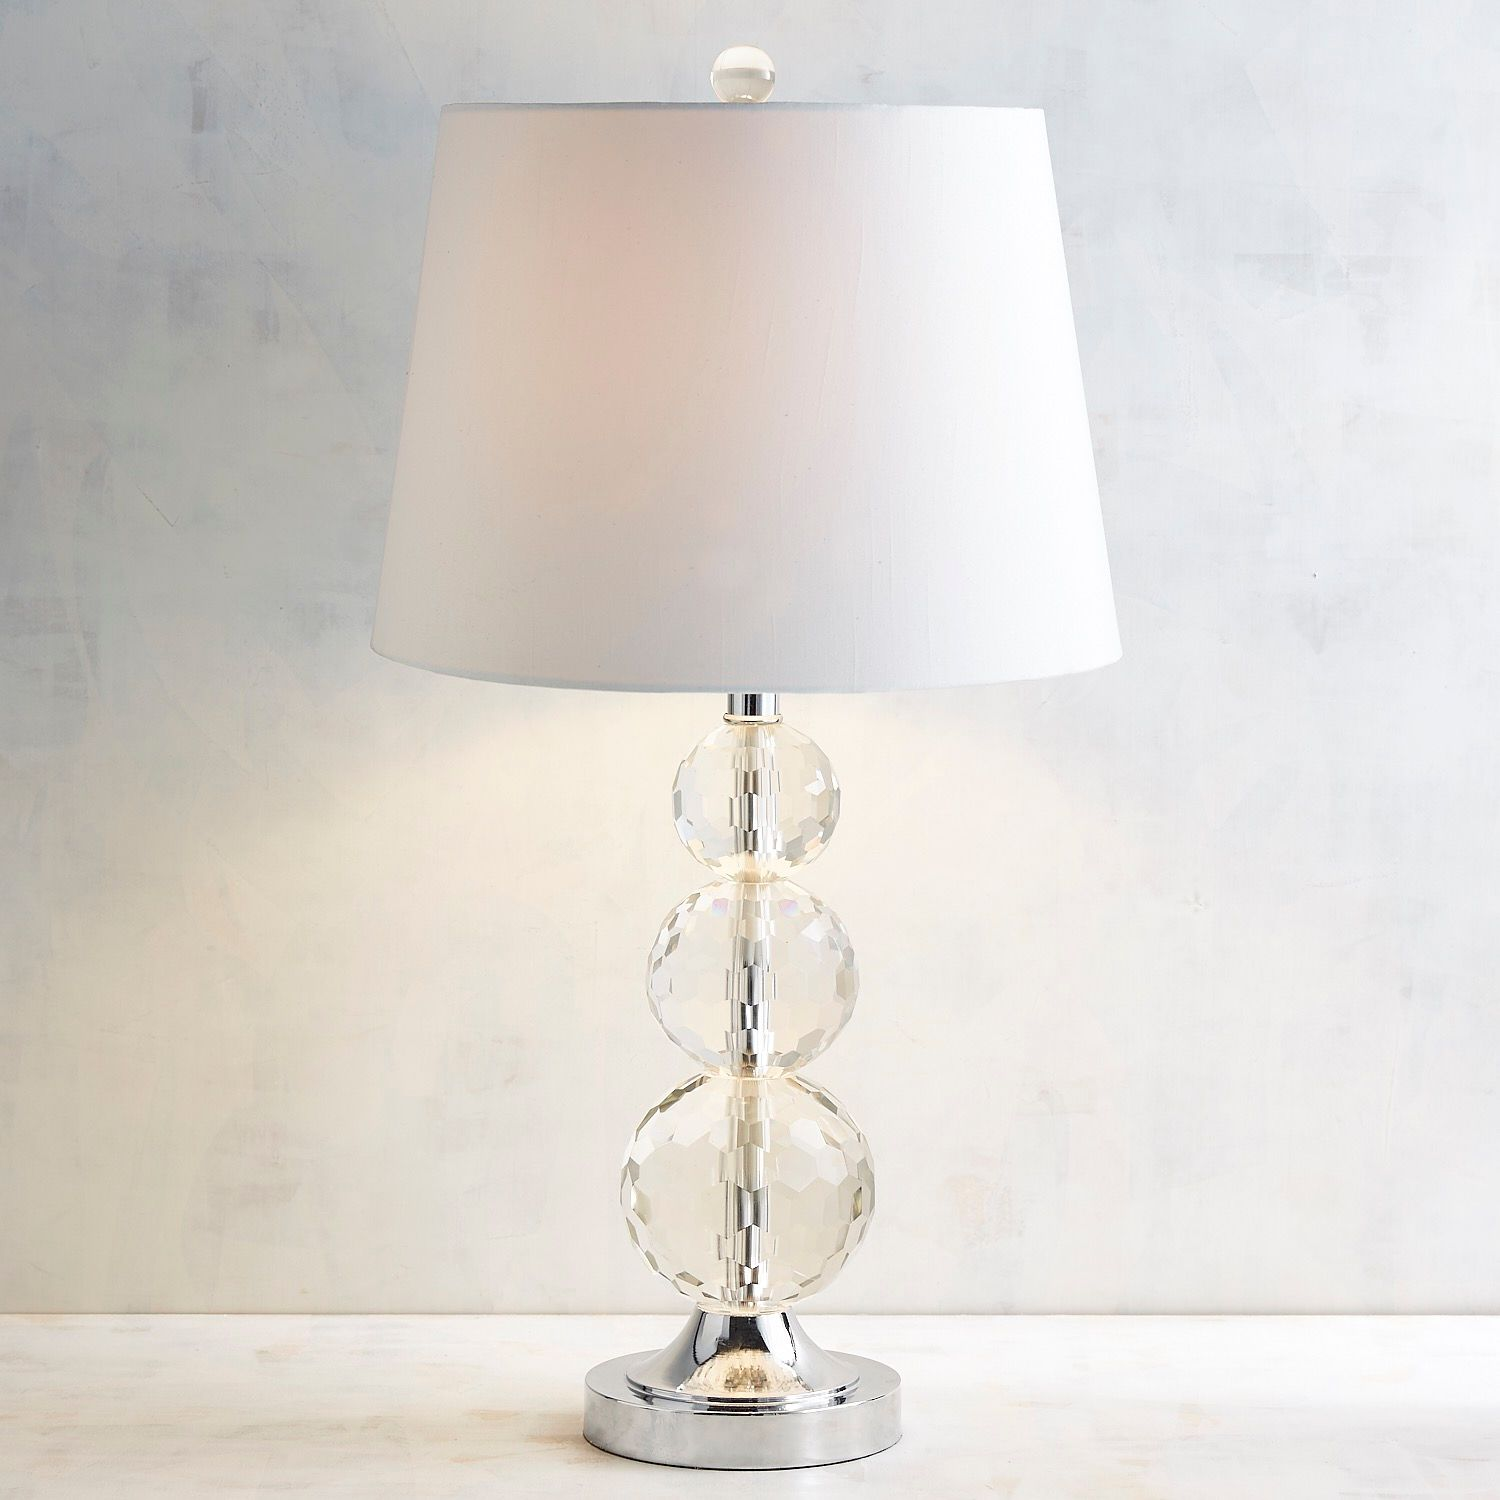 sabrina crystal table lamp pier imports one accent lamps dale tiffany dragonfly silver metal console red pieces wedding reception decorations coffee with drawers pottery barn